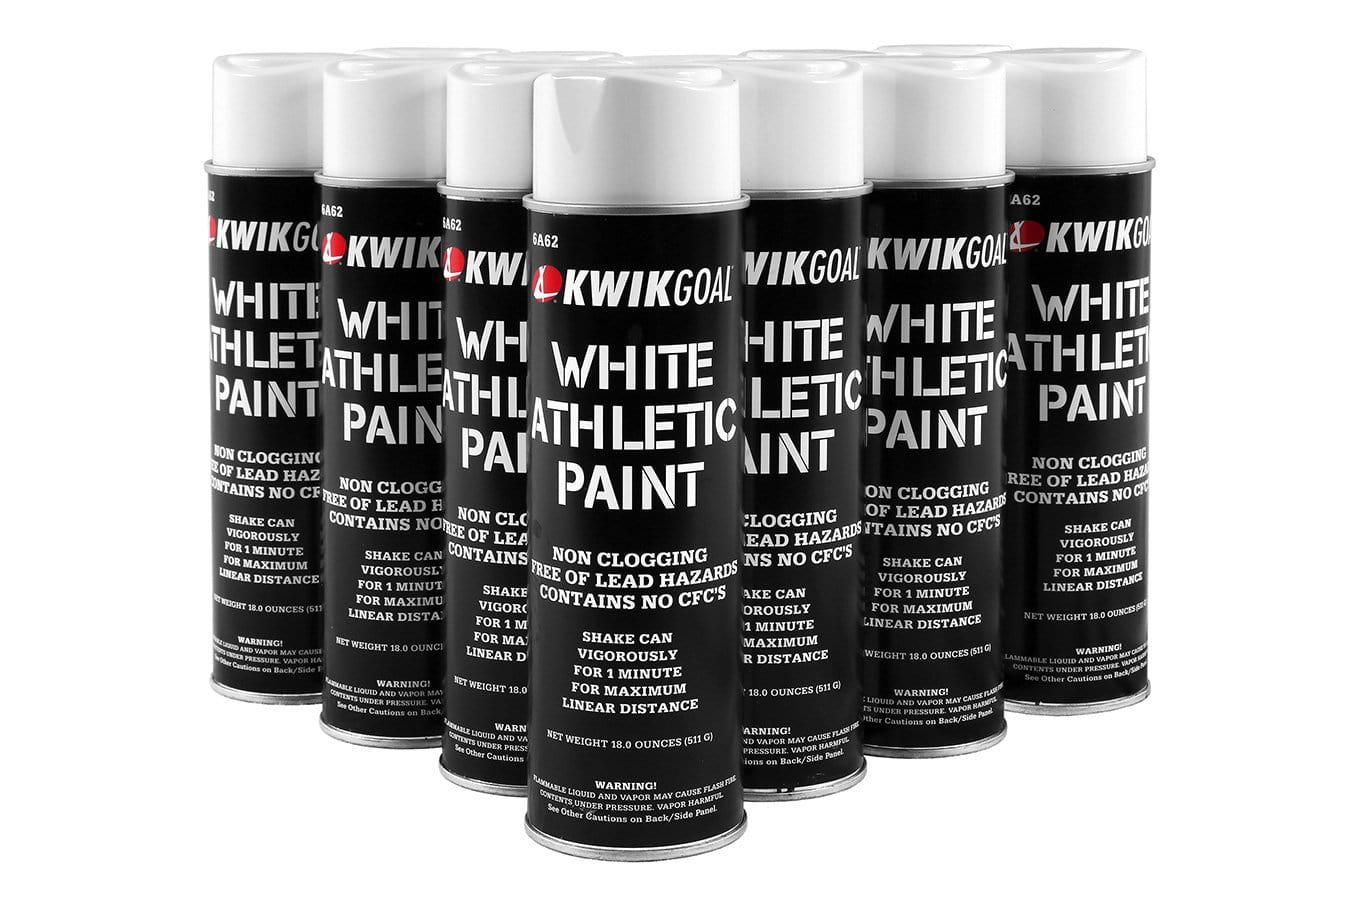 Athletic Paint White (Case of 12 cans)